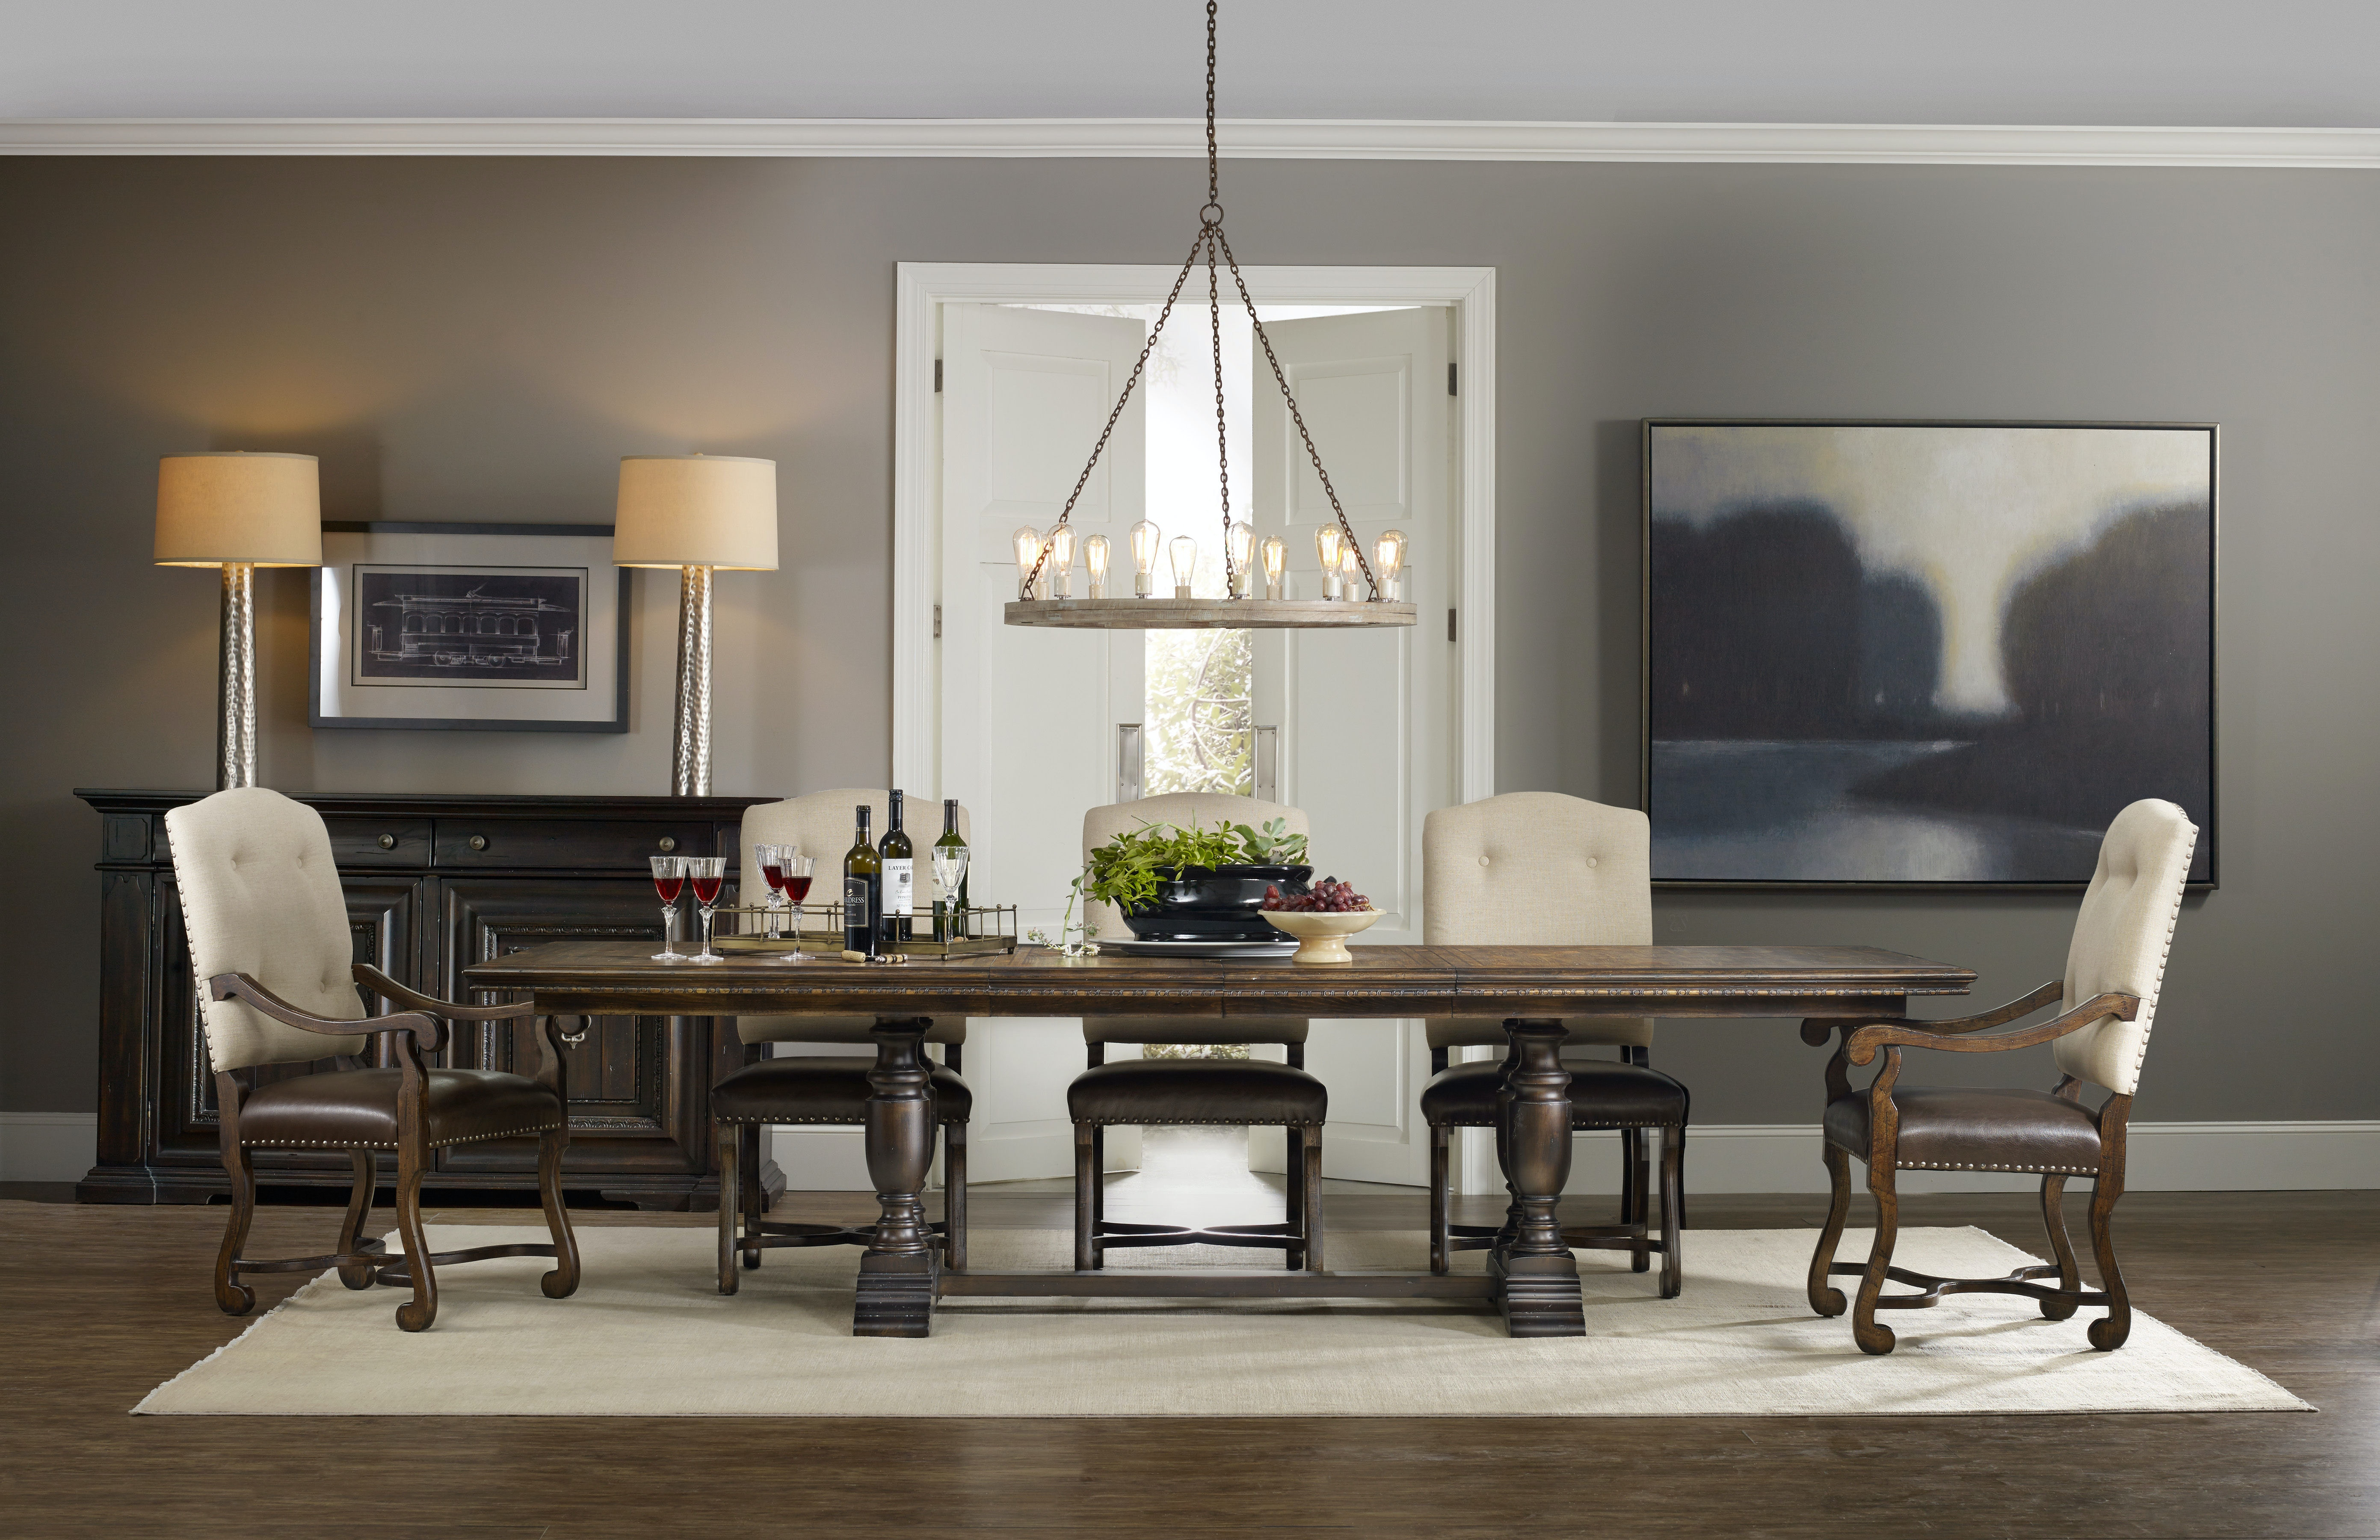 Hooker Furniture Dining Room Treviso Trestle Dining Table with Two ...